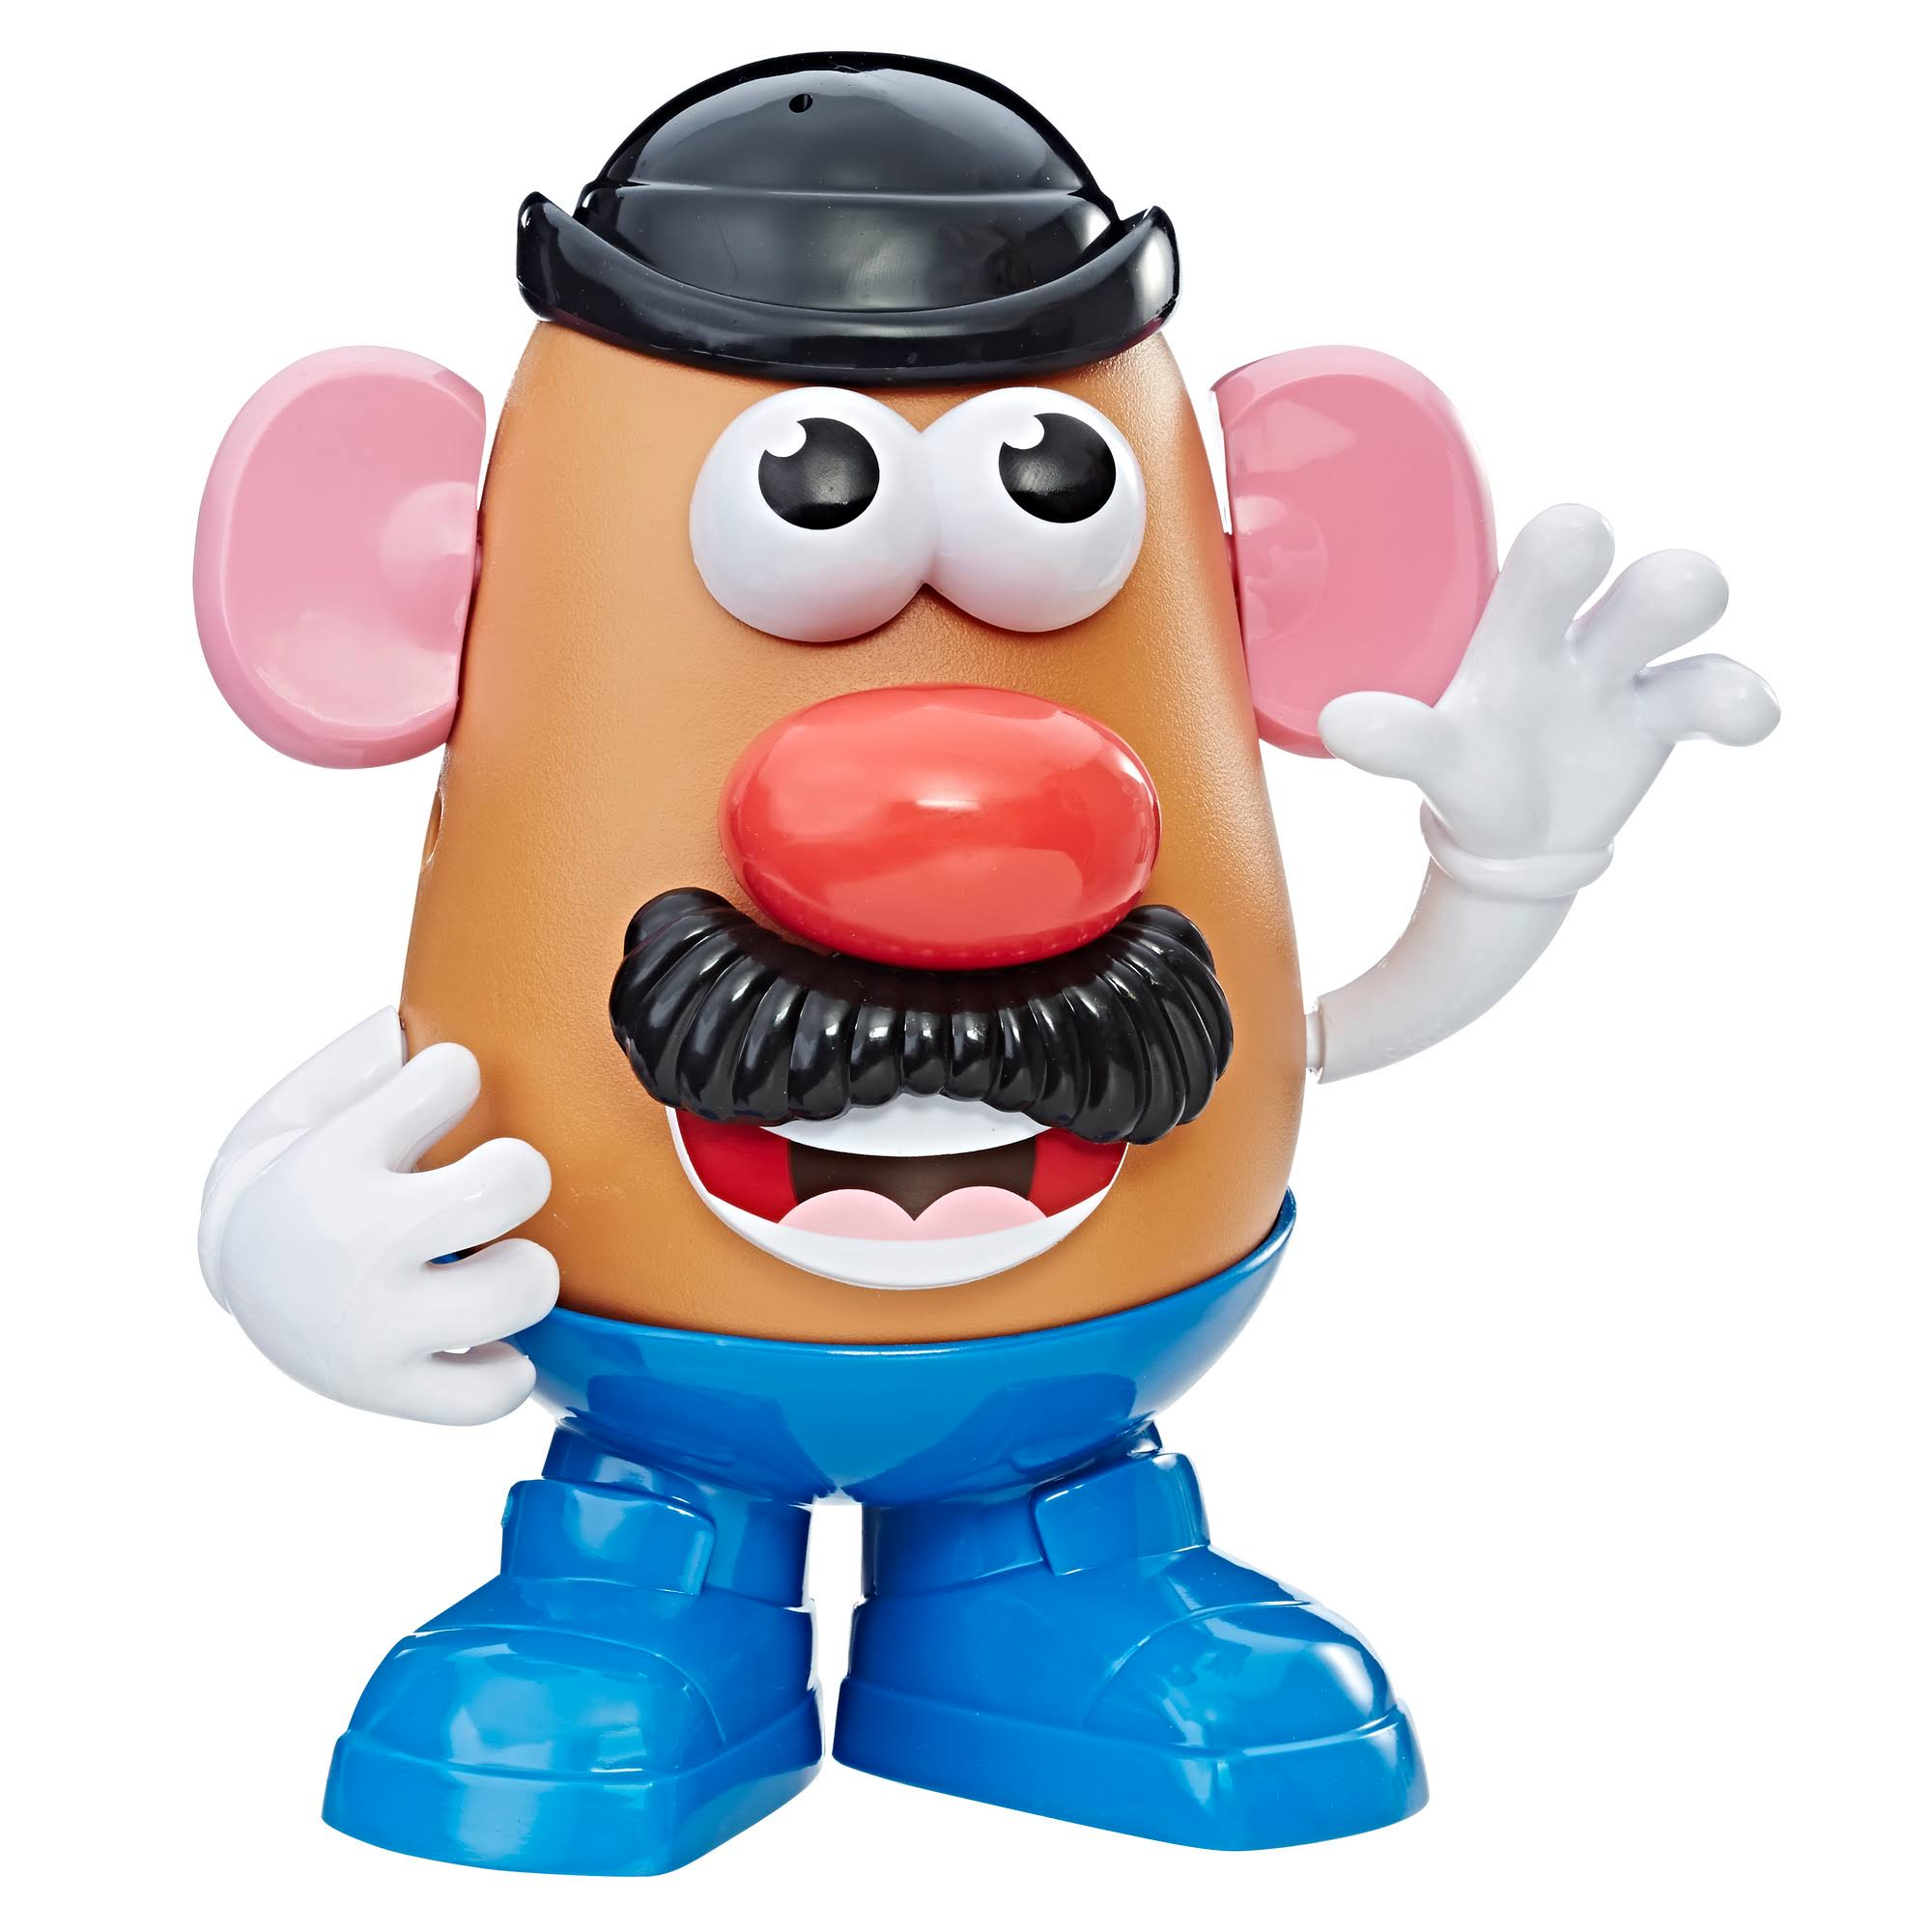 Playskool Friends Mr. Potato Head Classic Figure Toy